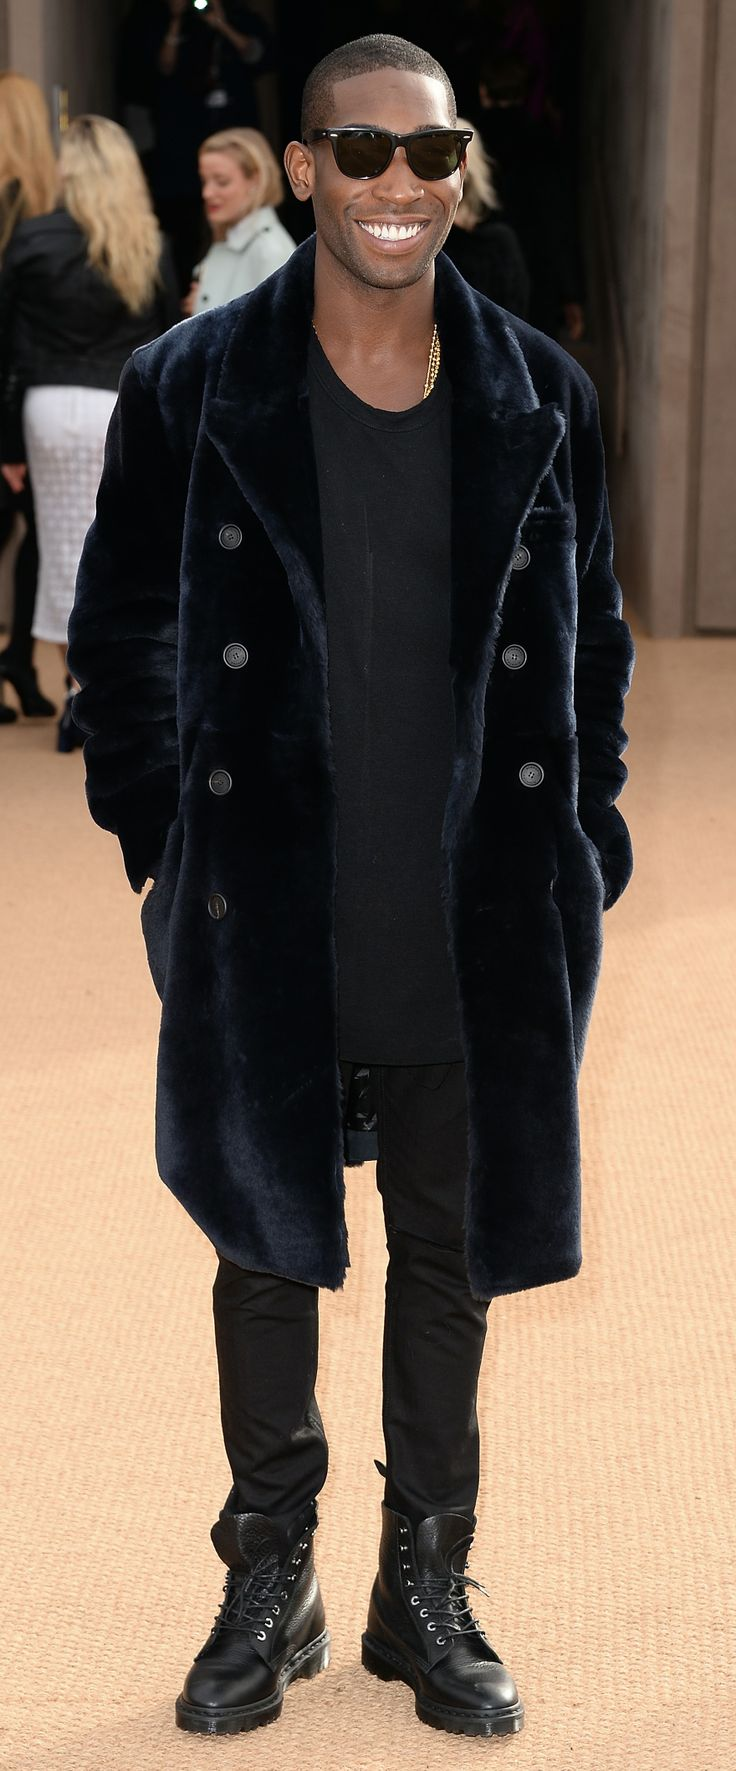 British musician Tinie Tempah wearing Burberry at the Burberry Prorsum Womenswear Autumn/Winter 2014 Show in London